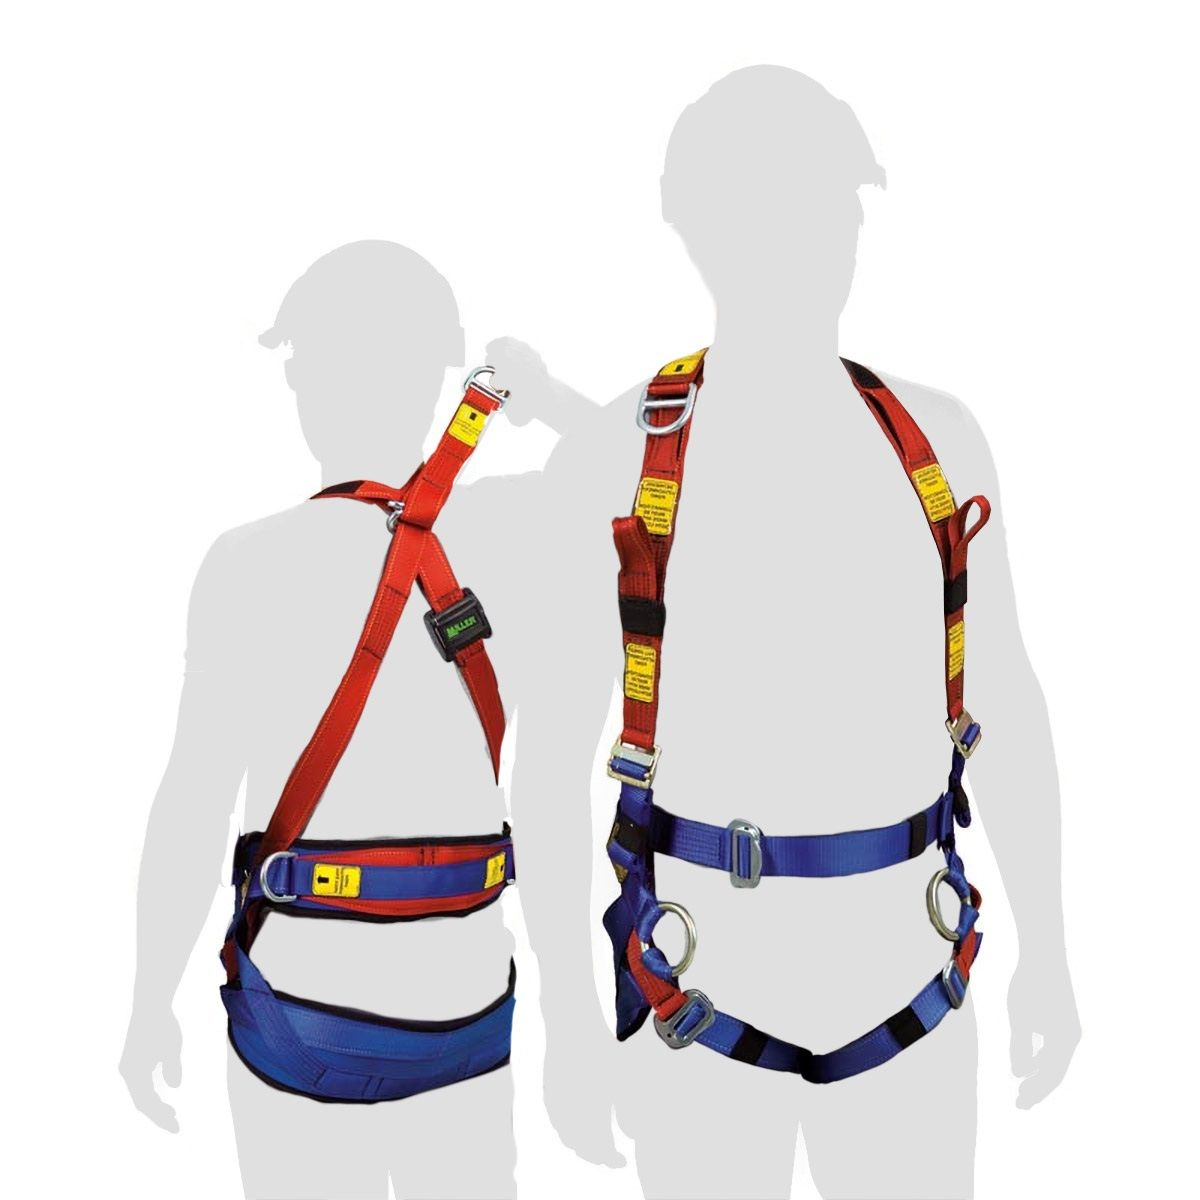 Sale! Miller Tower Worker Harness - original classic blue/red style